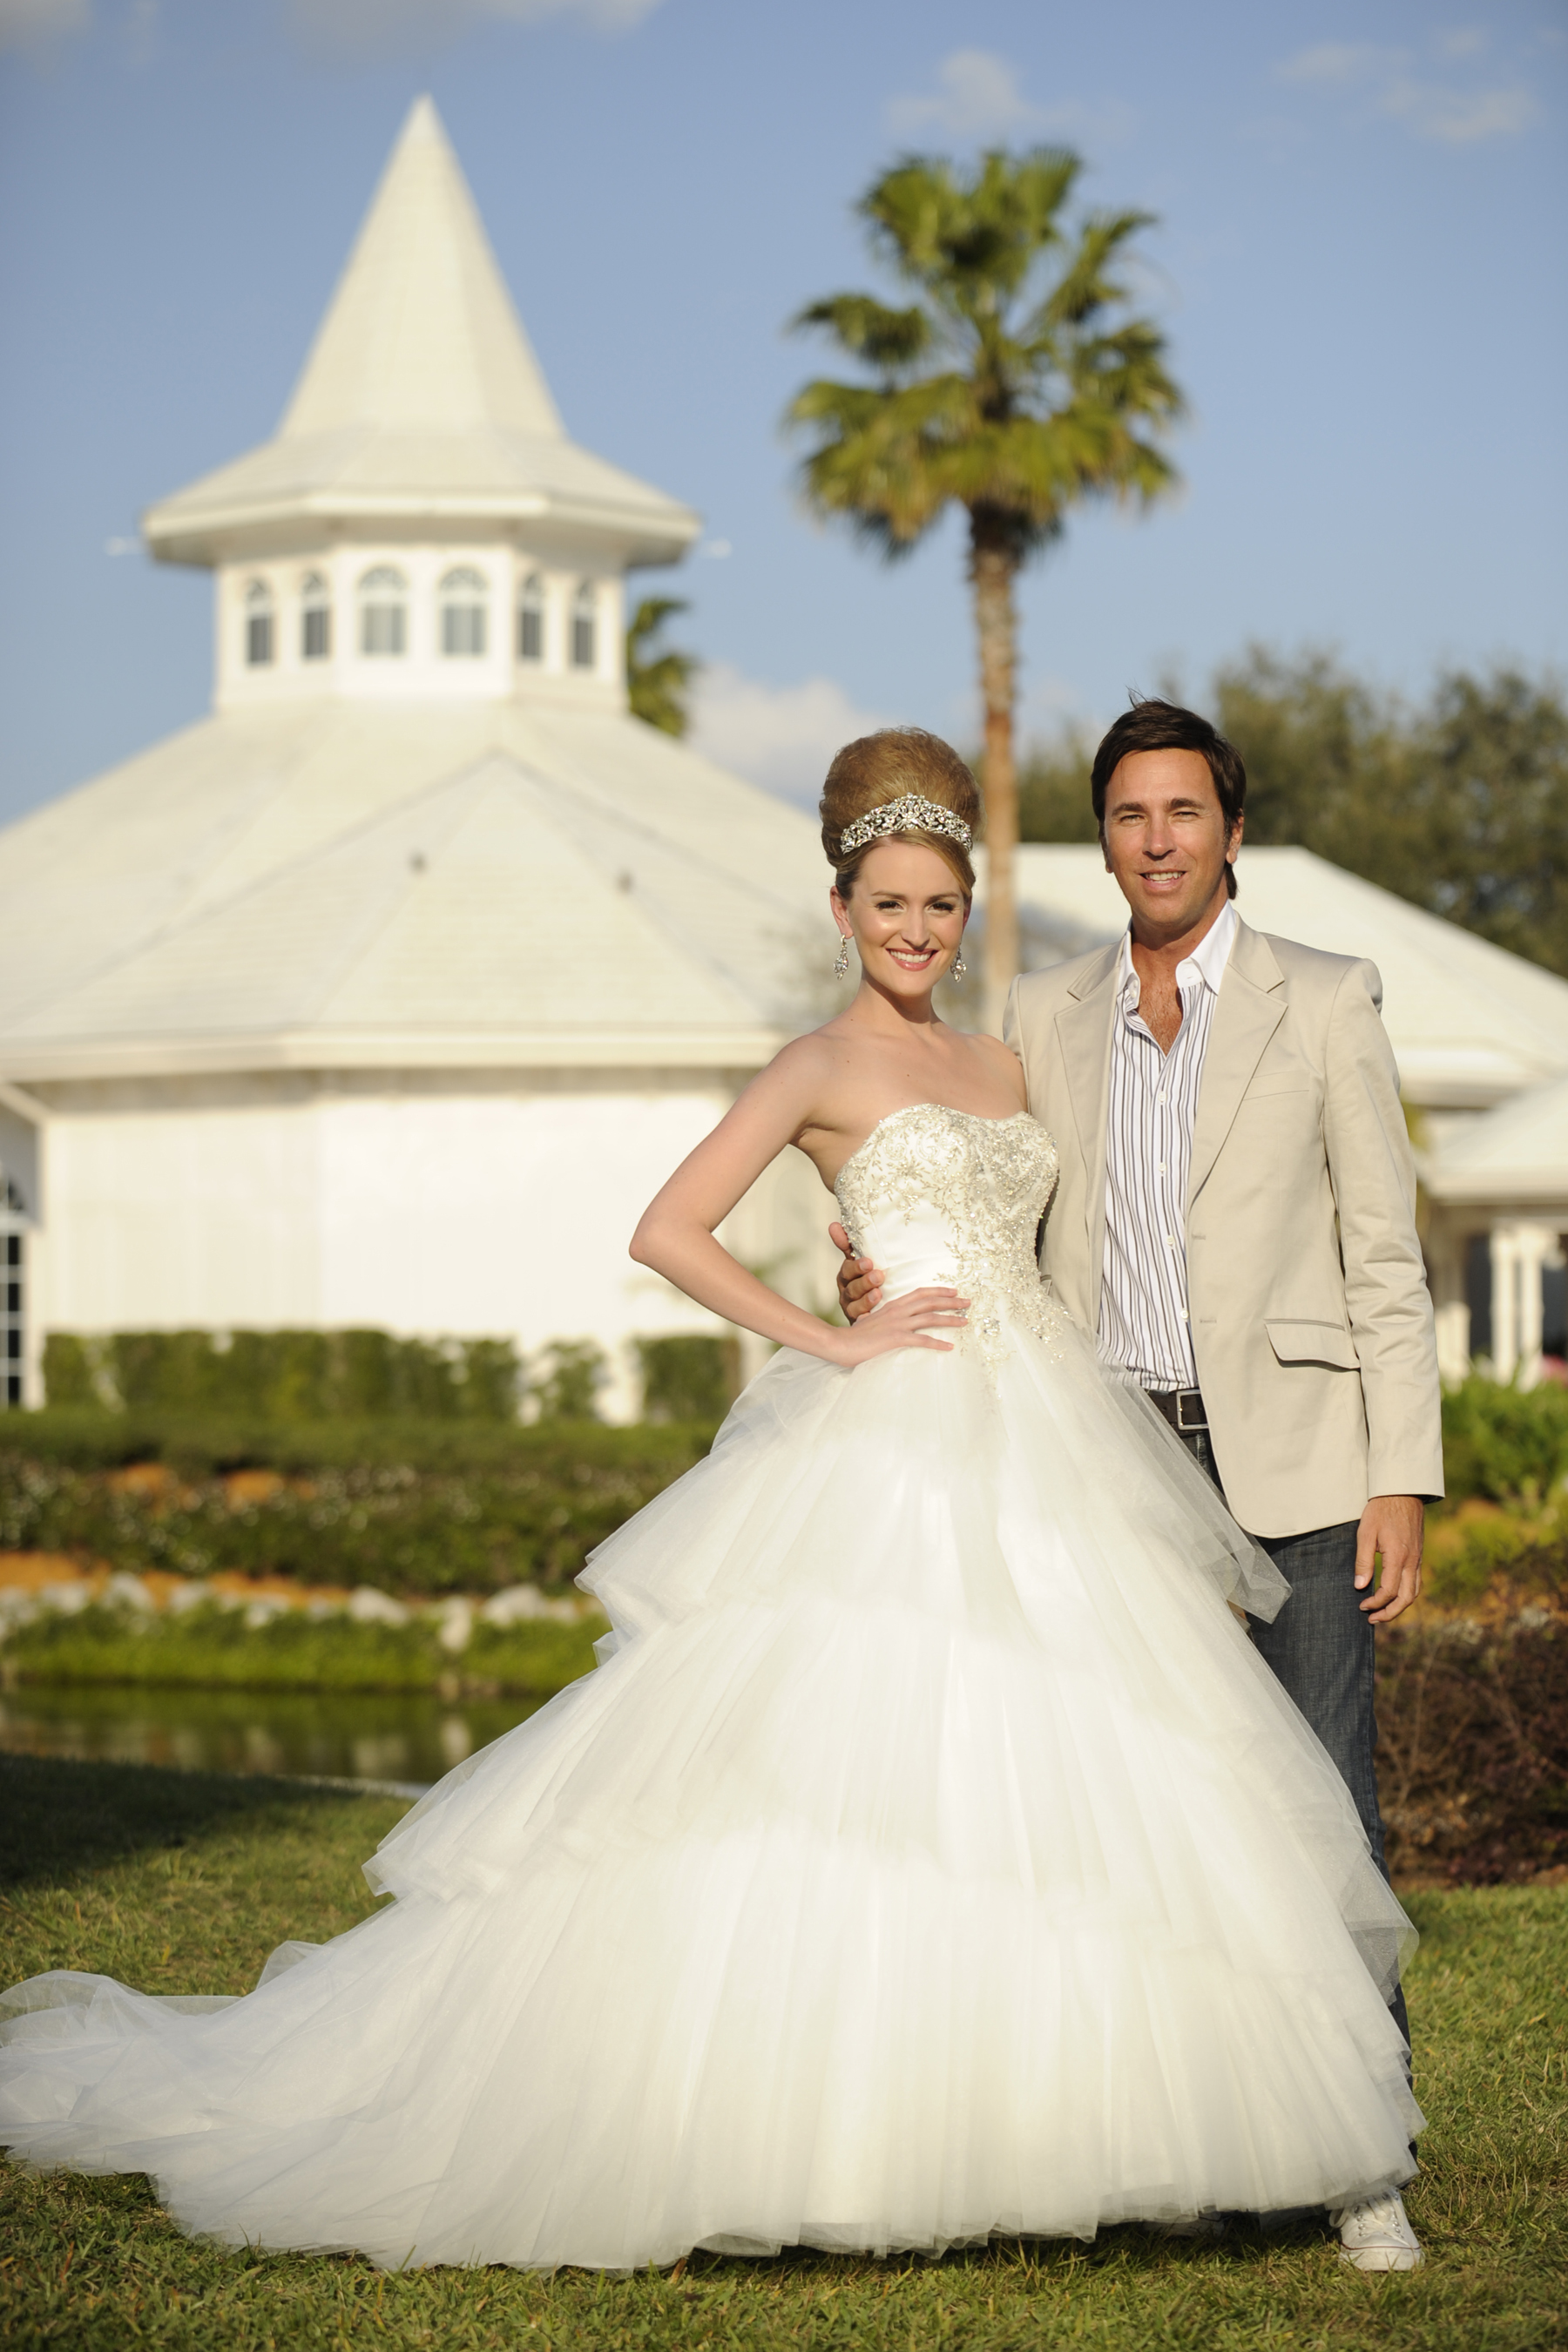 Newest Disney Princess Inspired Wedding Gown Revealed | Disney Every Day